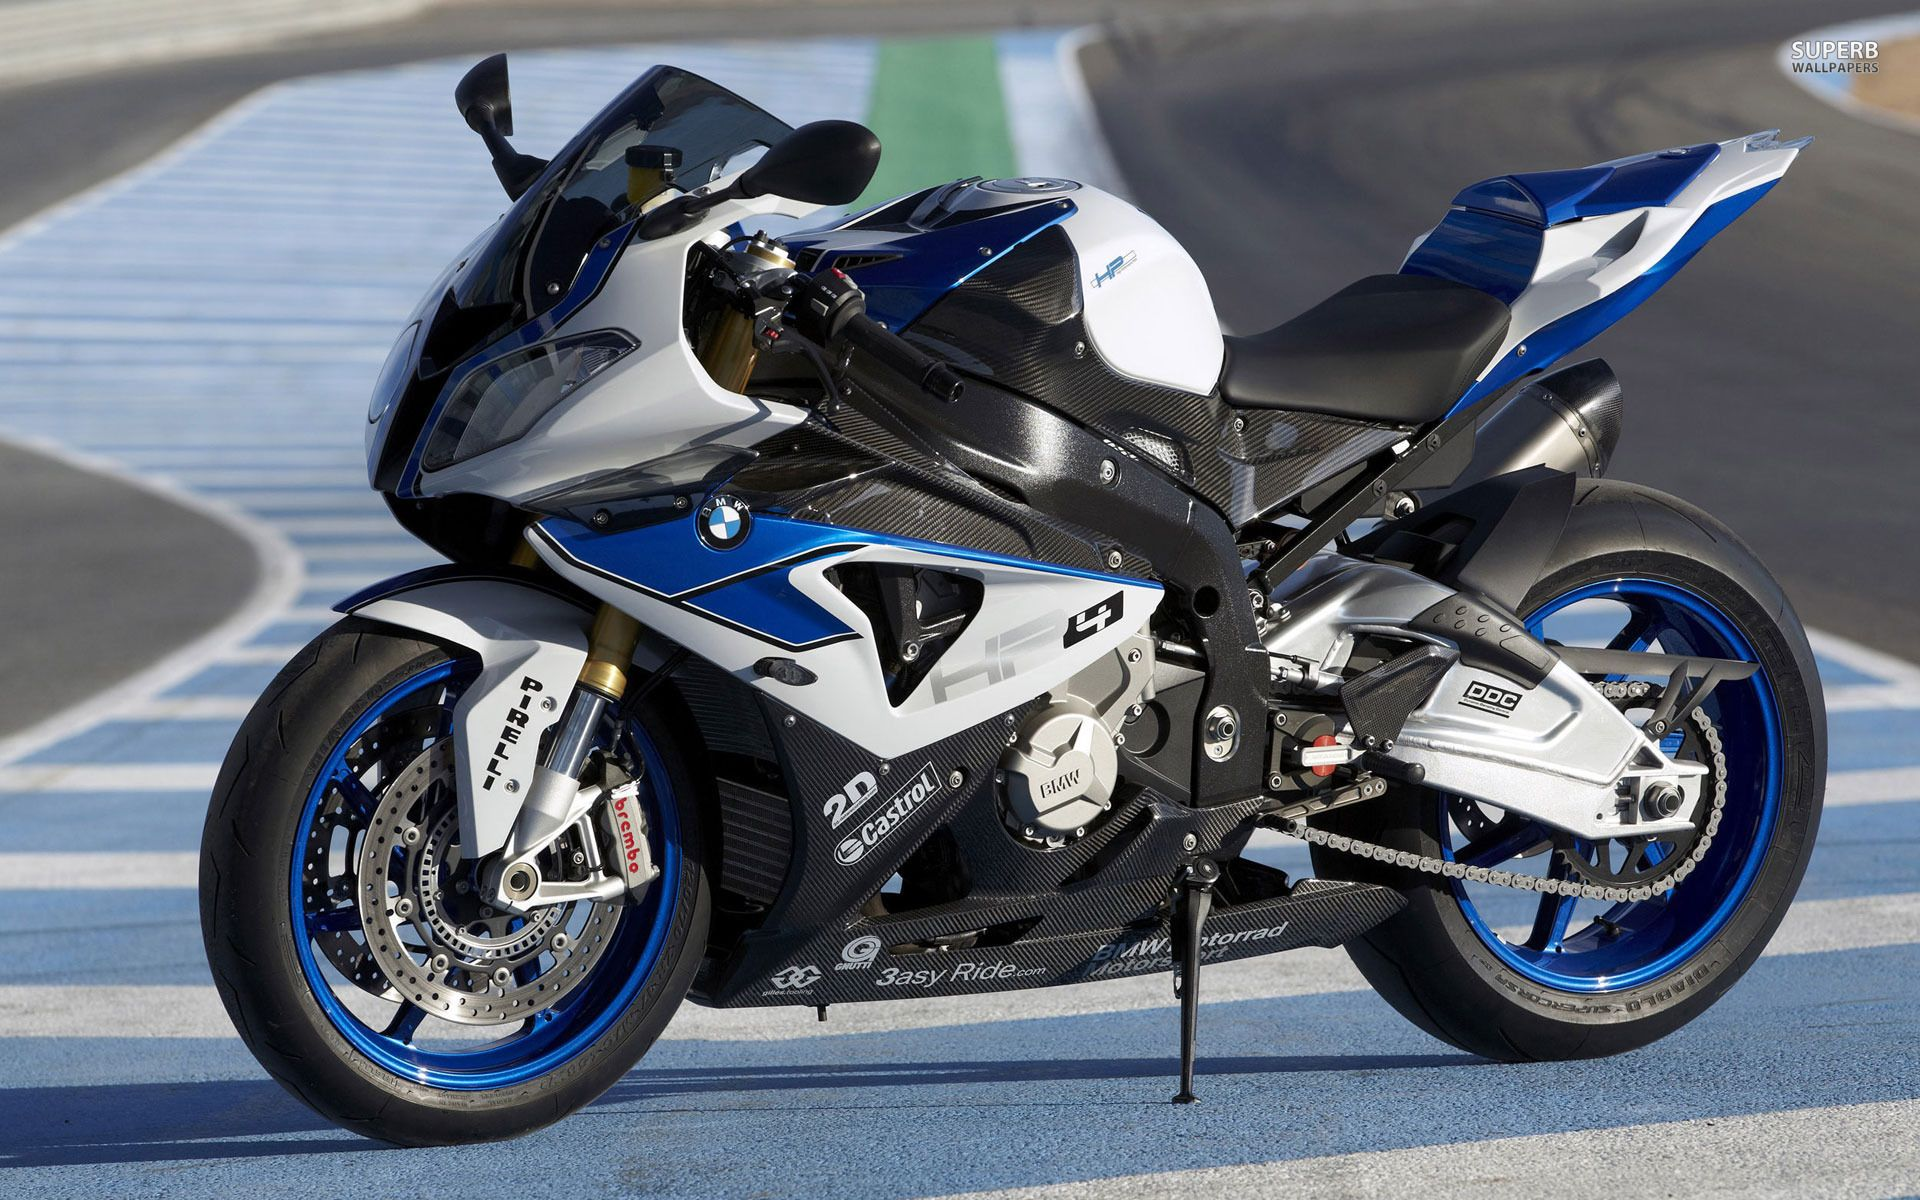 2013 Bmw S1000rr Hp4 18393 1920x1200 Mydream Bike Bmw